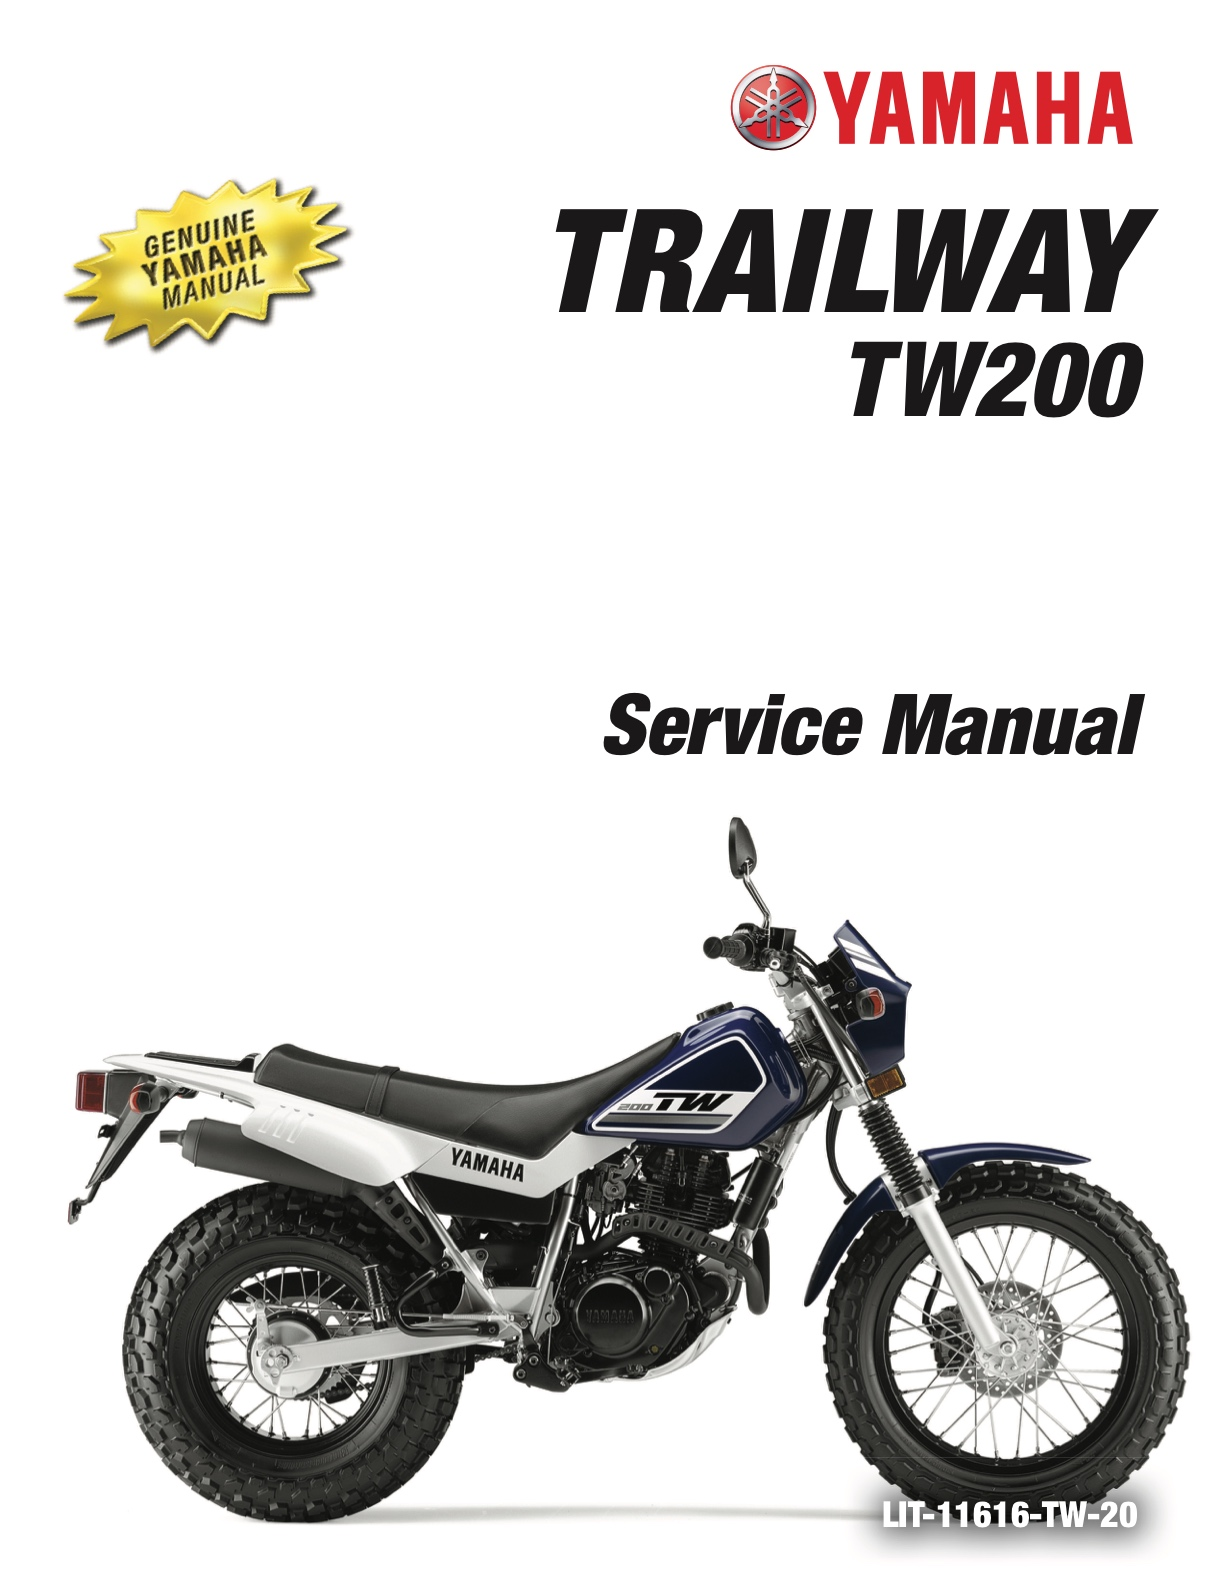 Yamaha Vx110 Sport Deluxe Workshop Manual